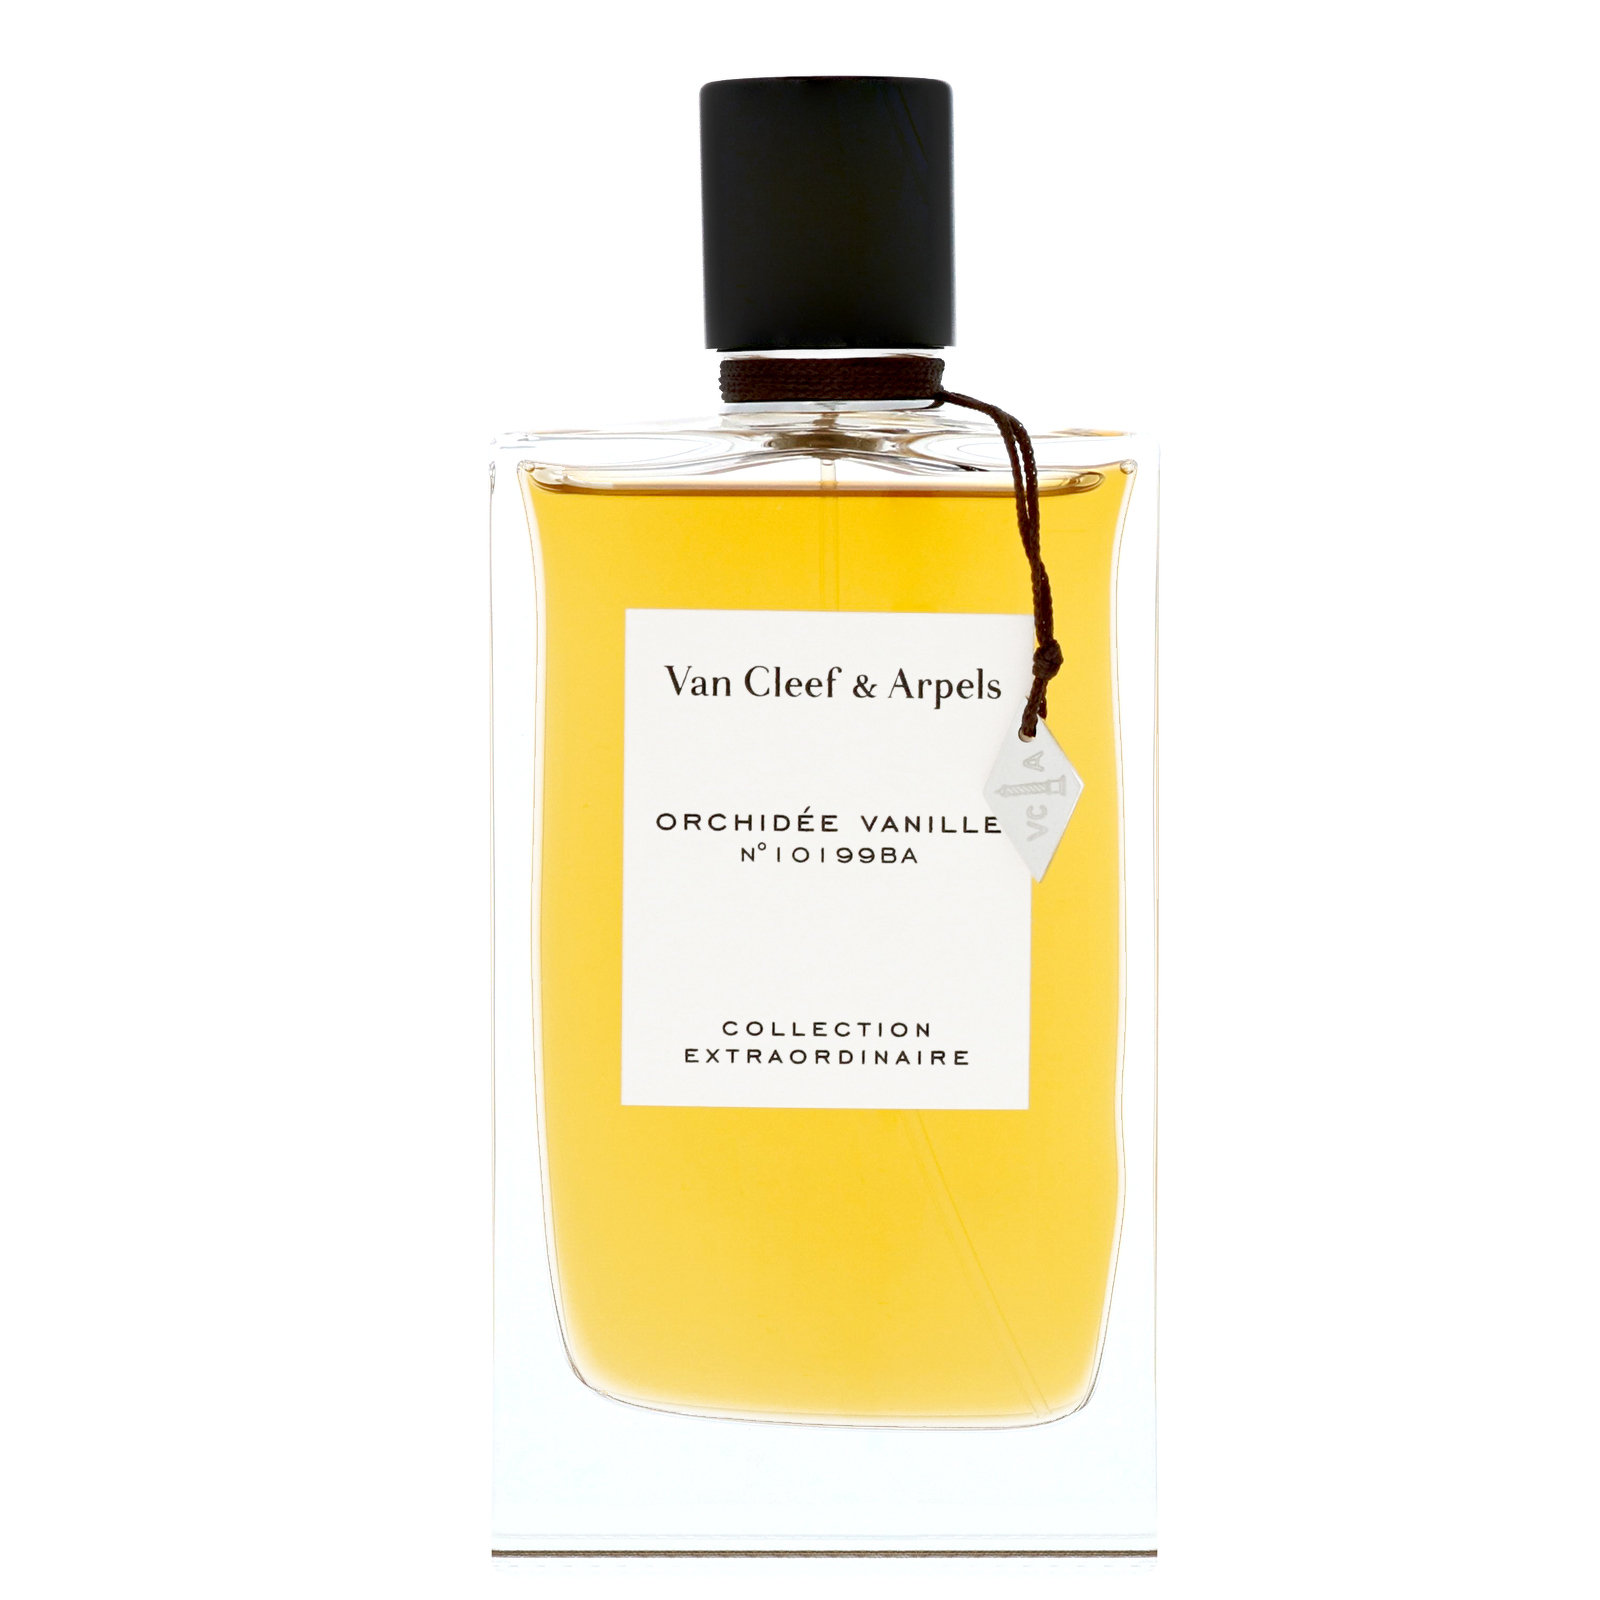 Van Cleef and Arpels Collection Extraordinaire Orchidee Vanille Eau de Toilette Spray 75ml